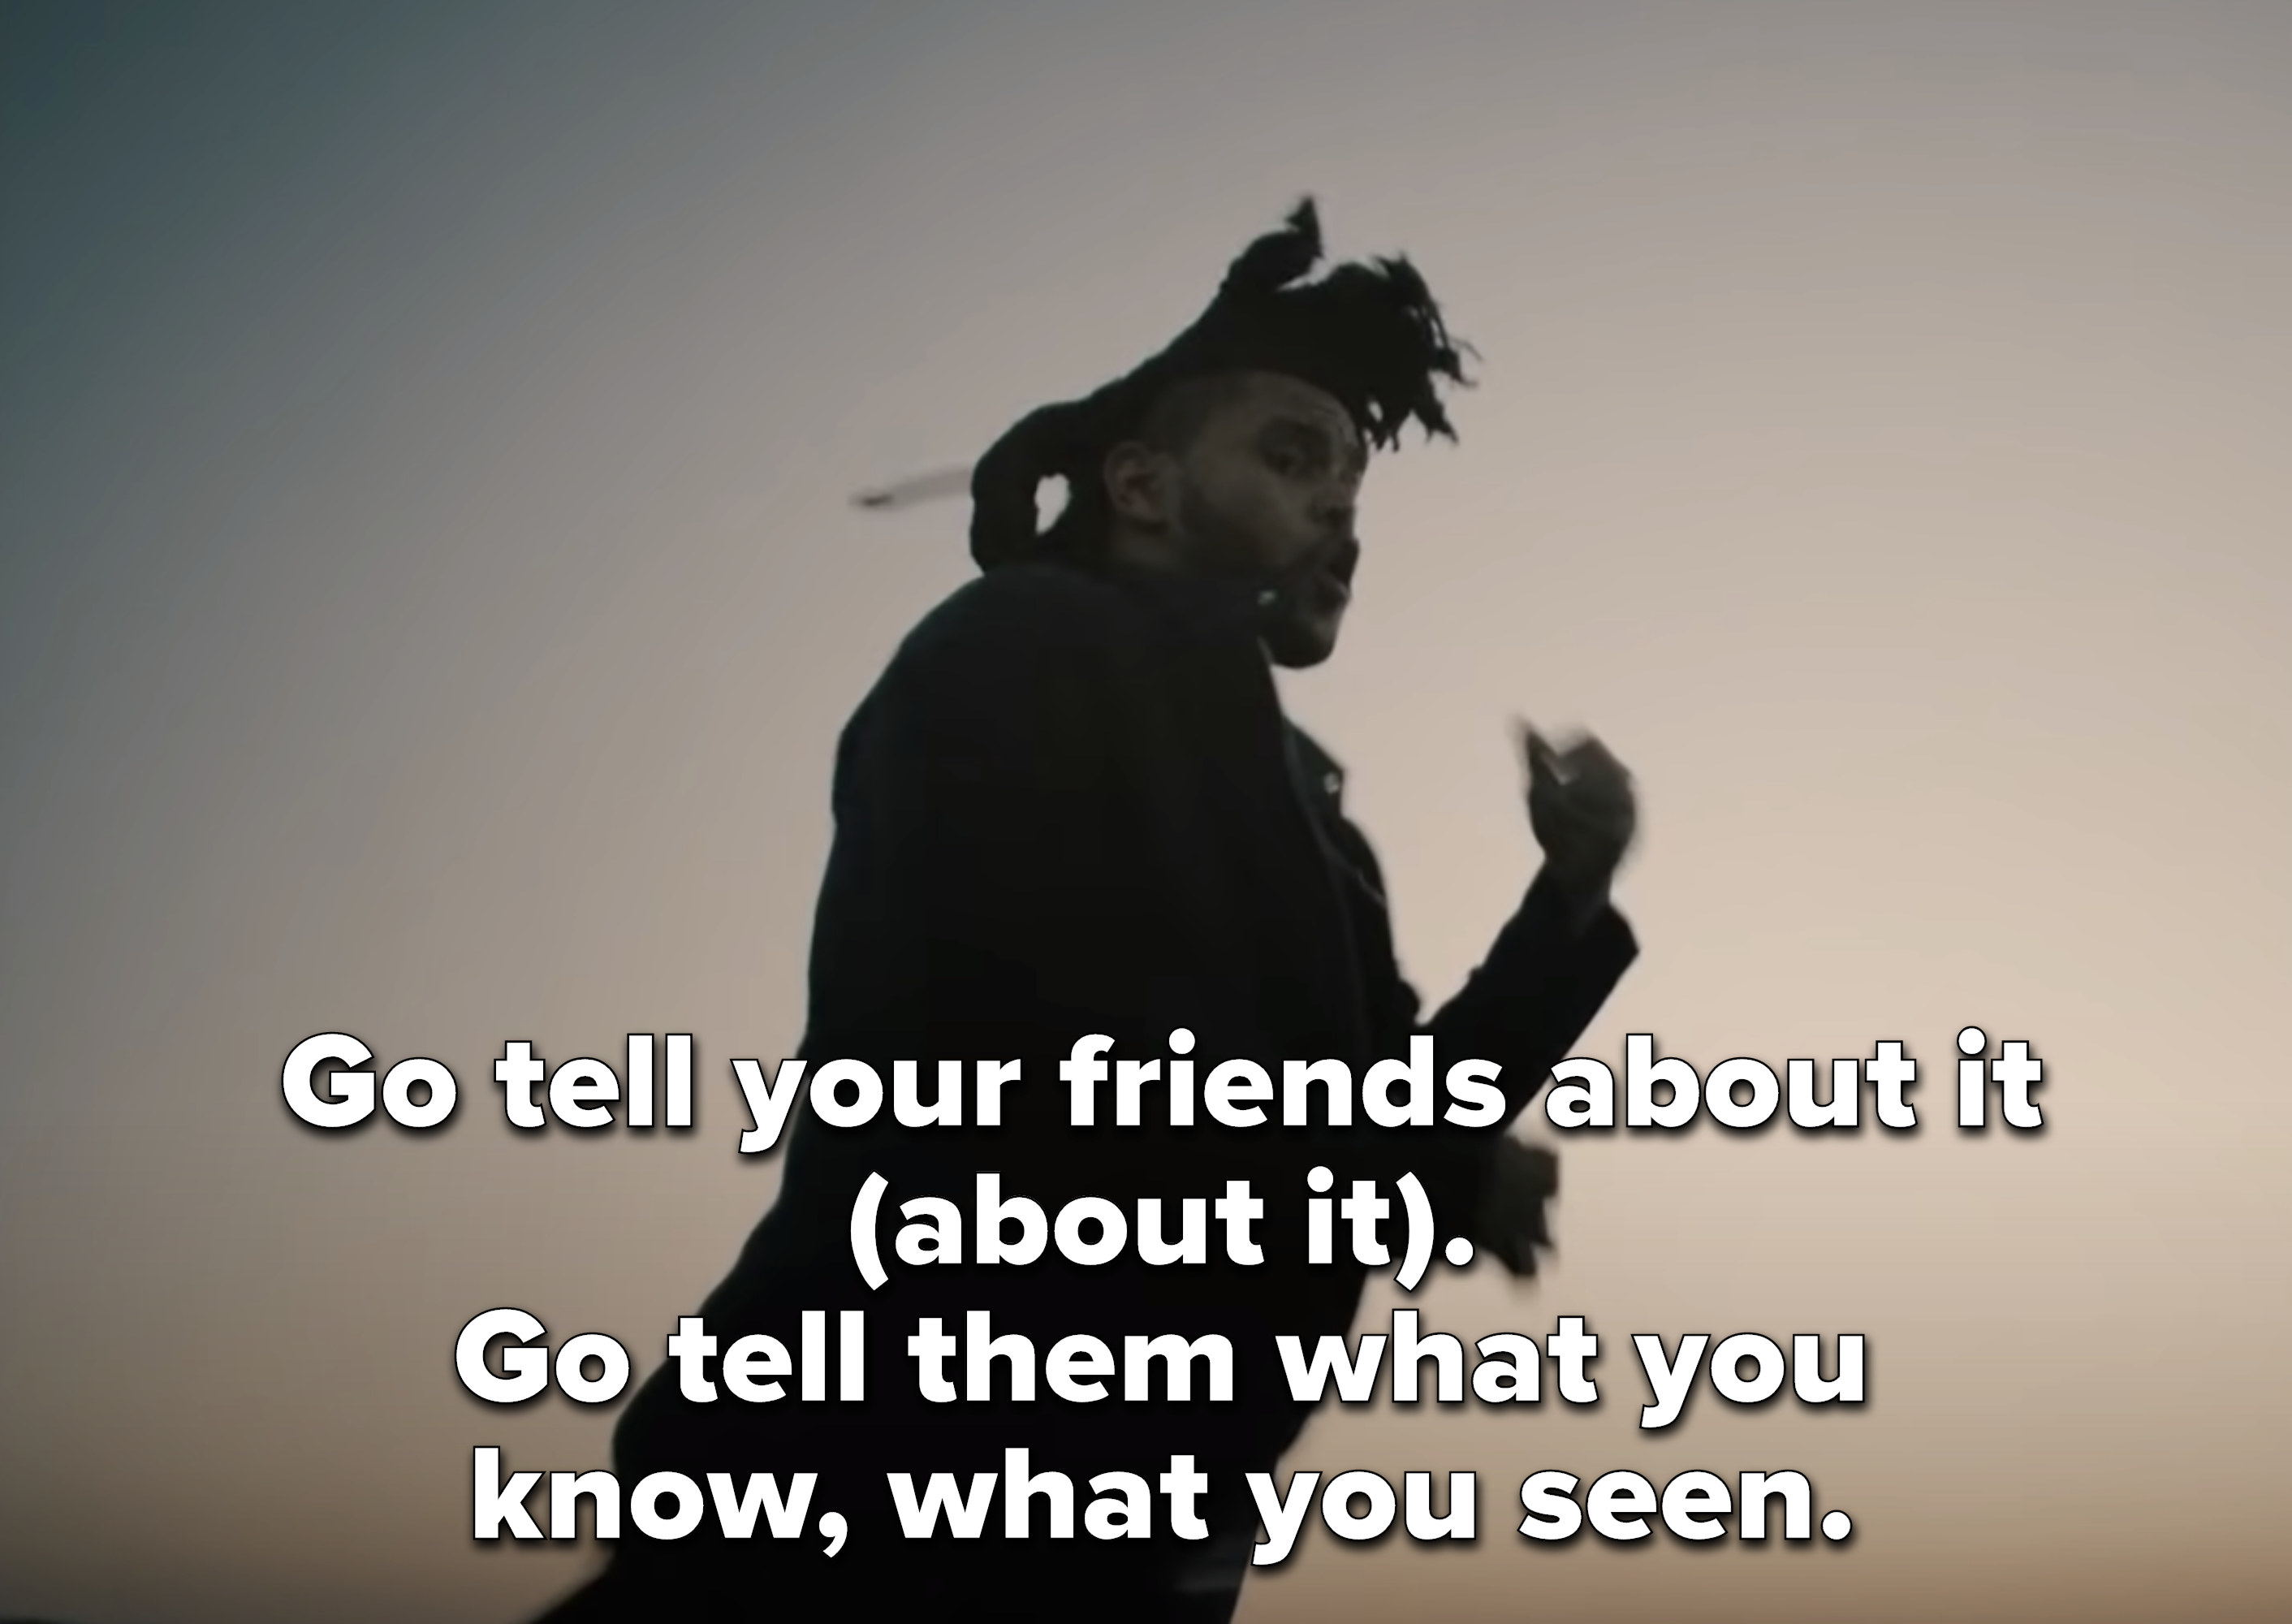 """""""Go tell your friends about it (about it) Go tell them what you know, what you seen"""" with a still of The Weeknd dancing with a dusty sky behind him from the music video"""